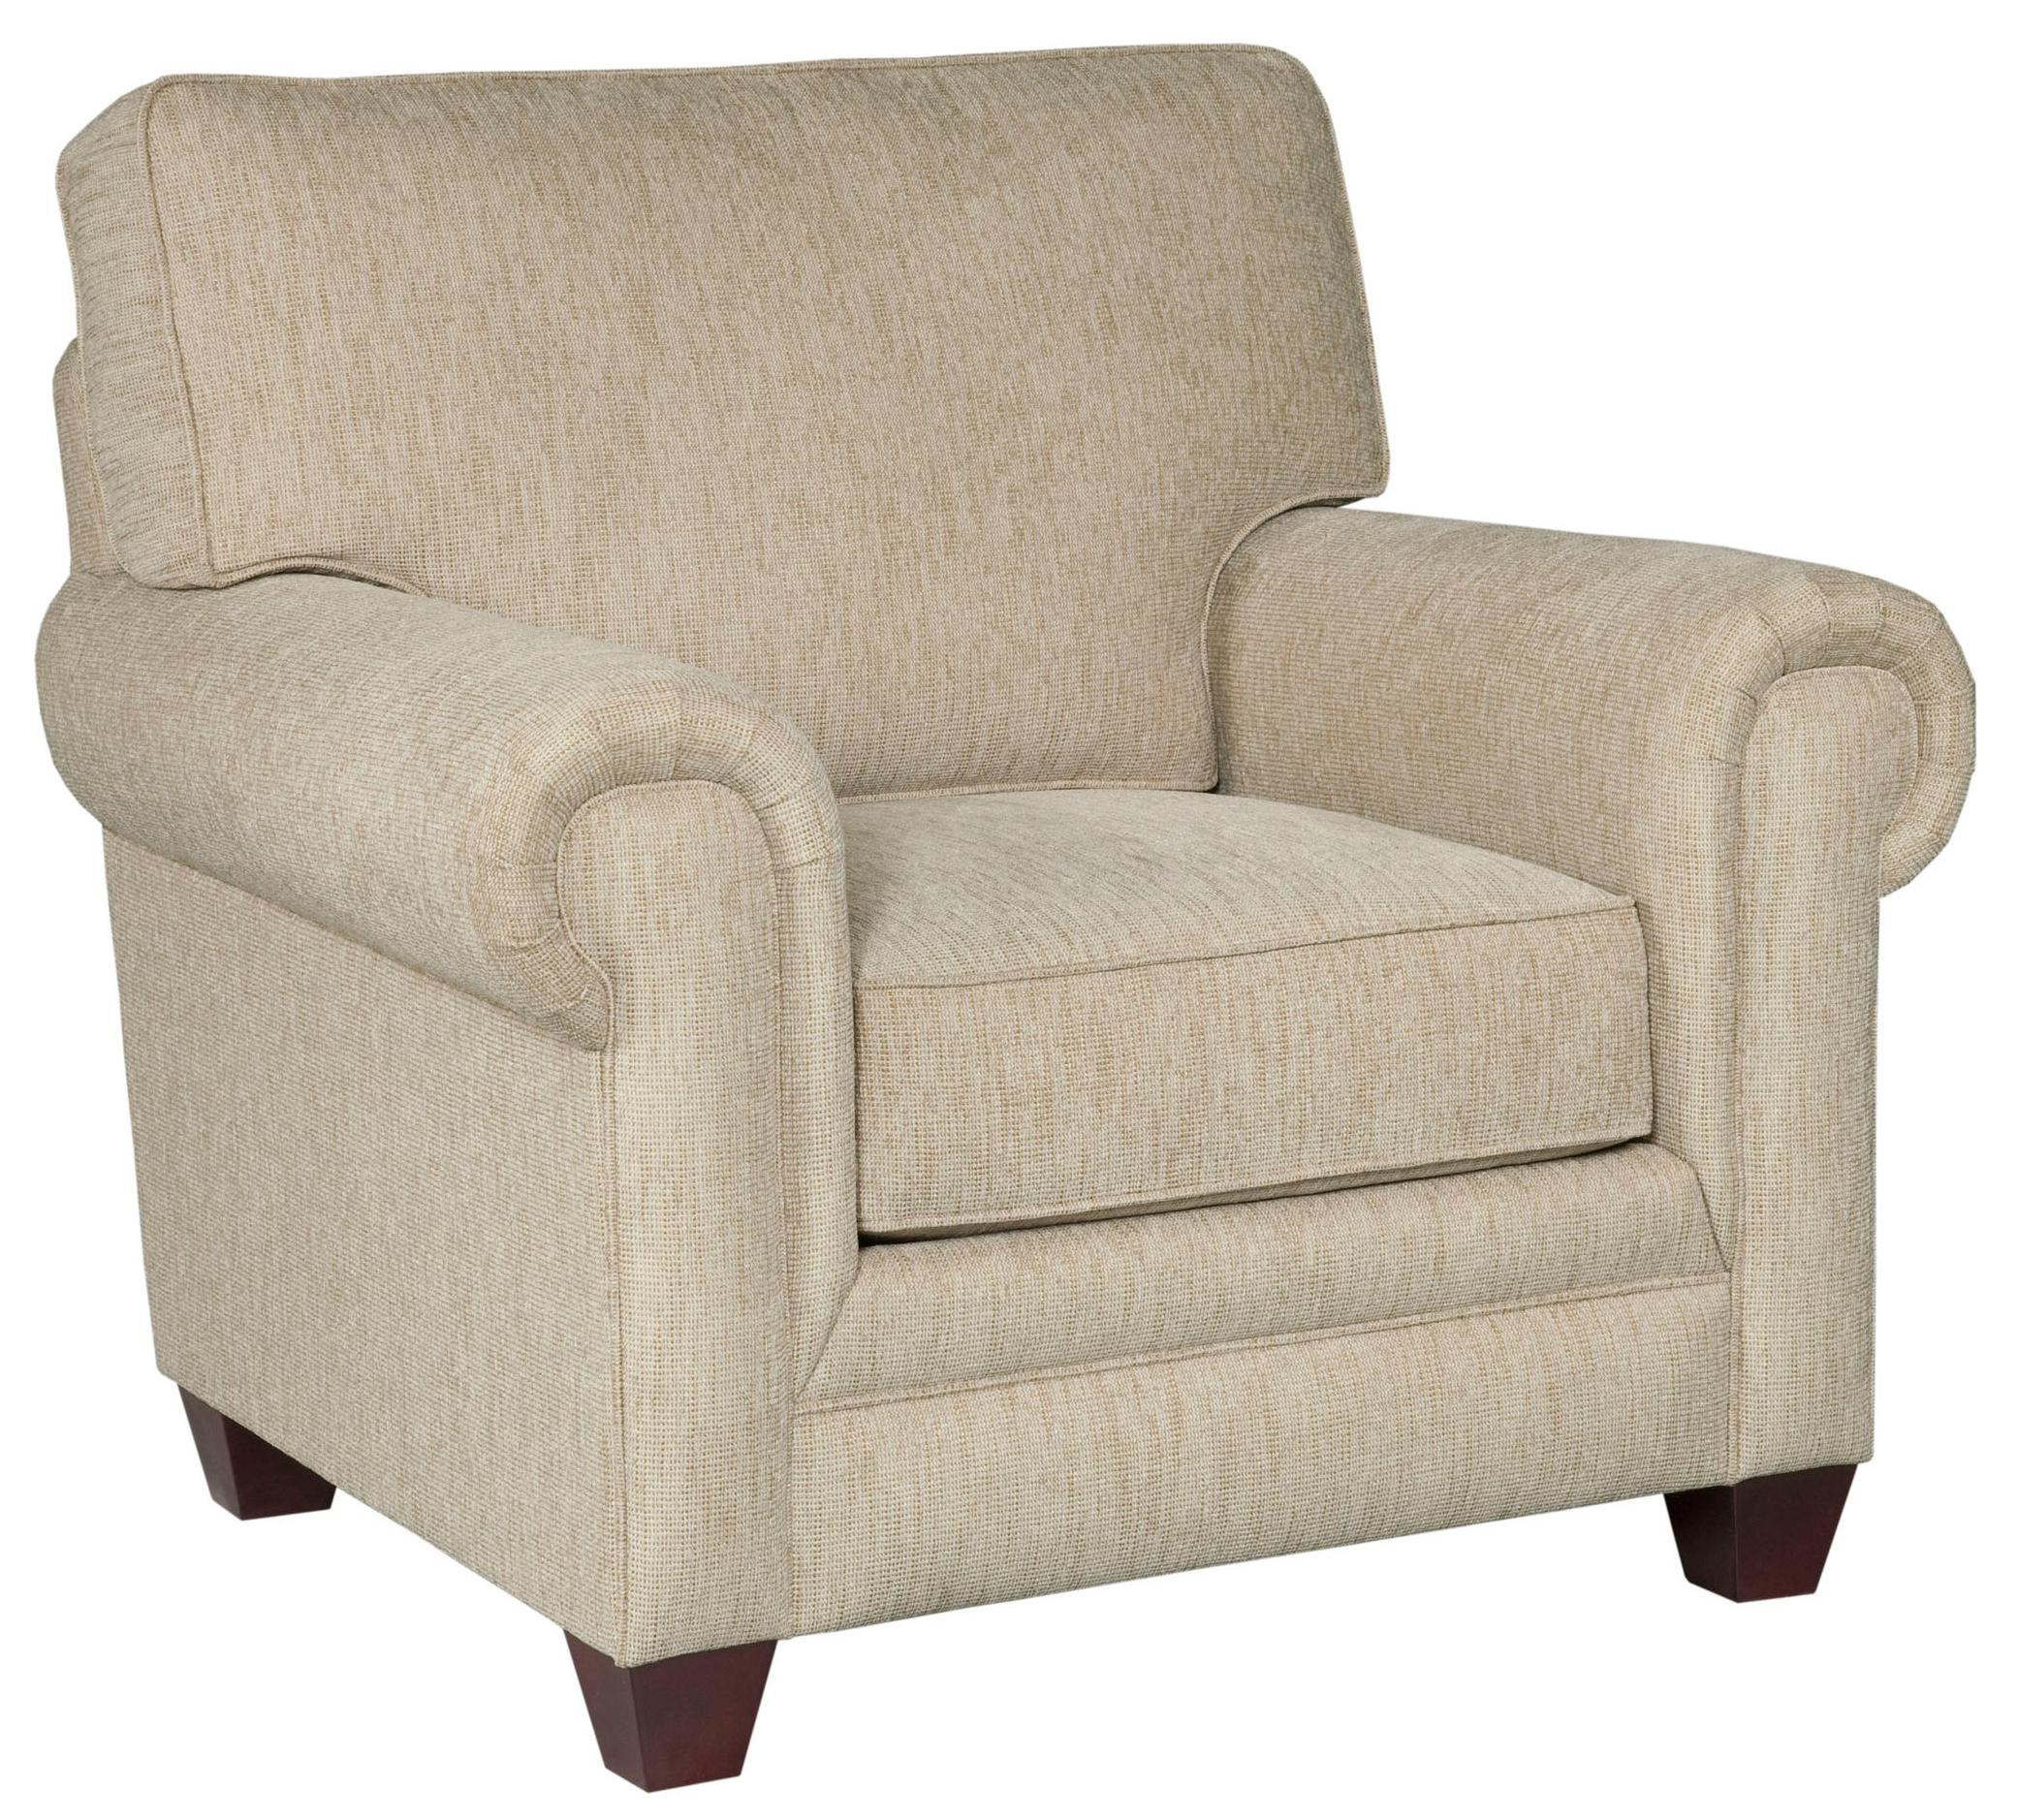 Broyhill Furniture Monica Chair - Item Number: 3678-0